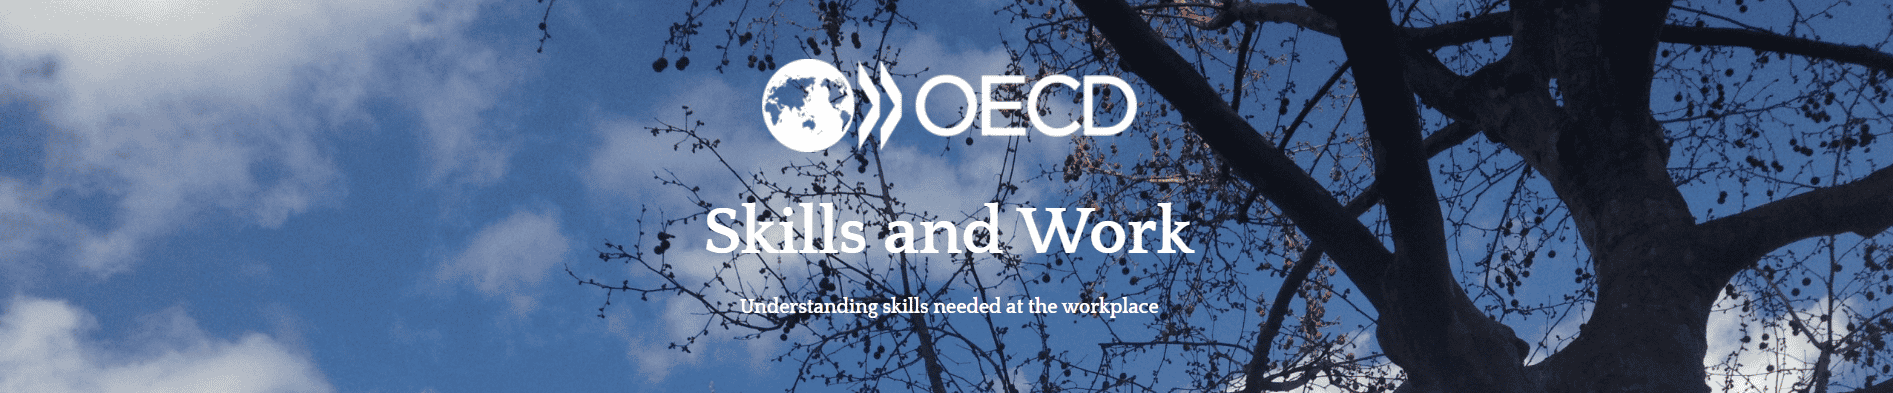 OECD Skills and Work Blog